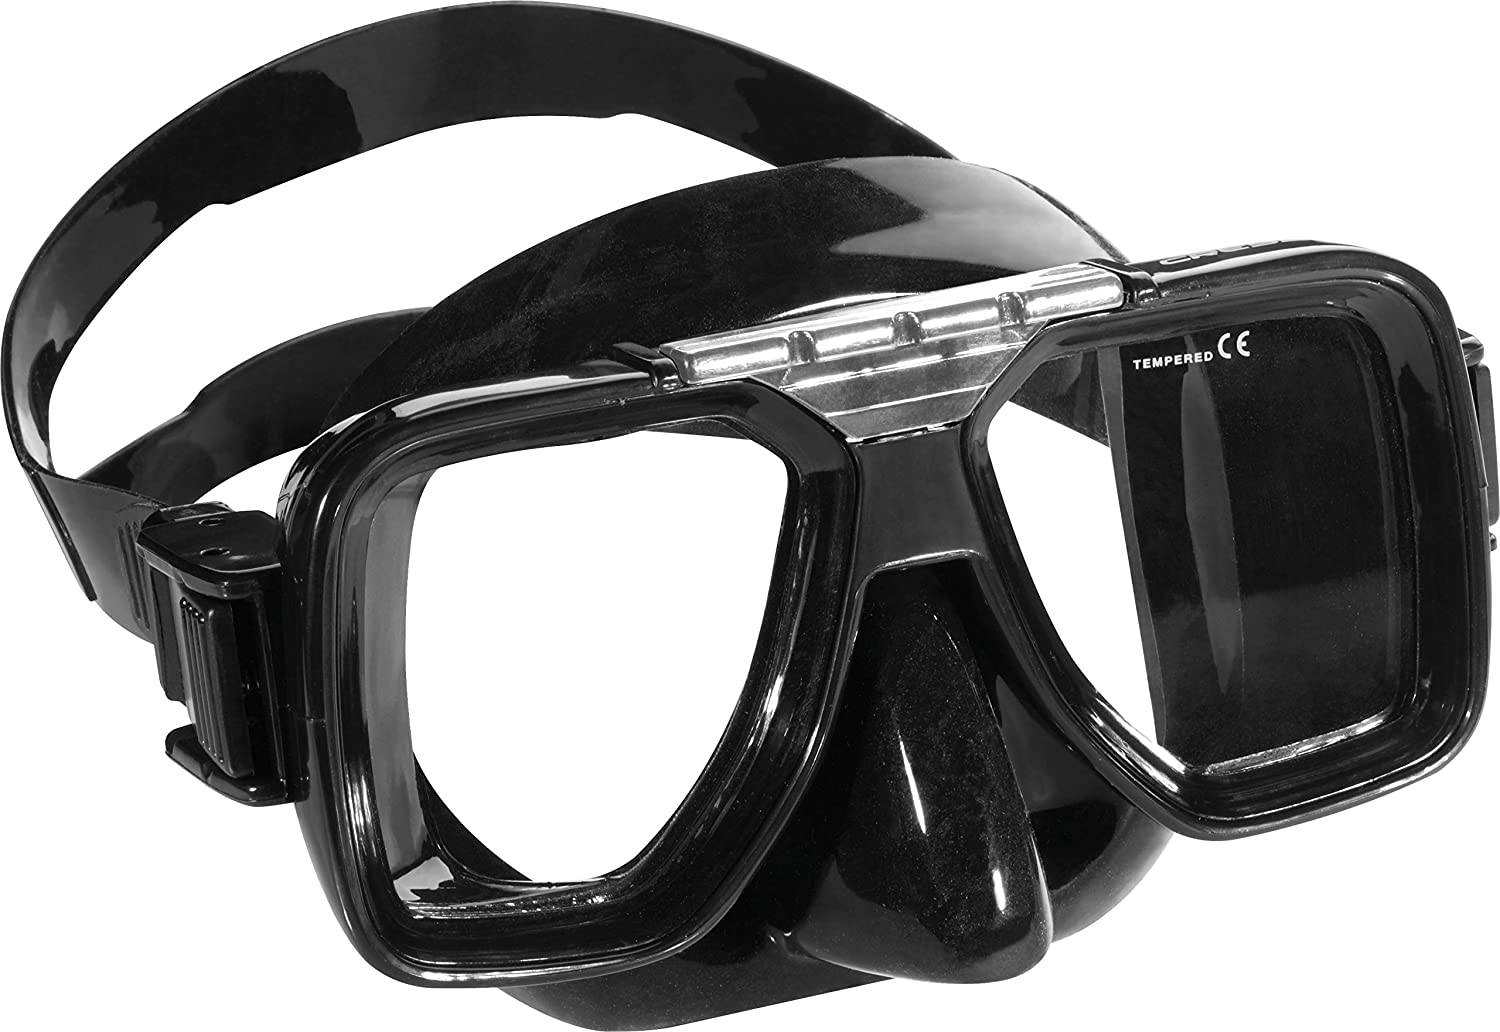 Cressi Tropical Ultra Durable Mask outlet Scuba for Snorkeling Diving Outlet SALE